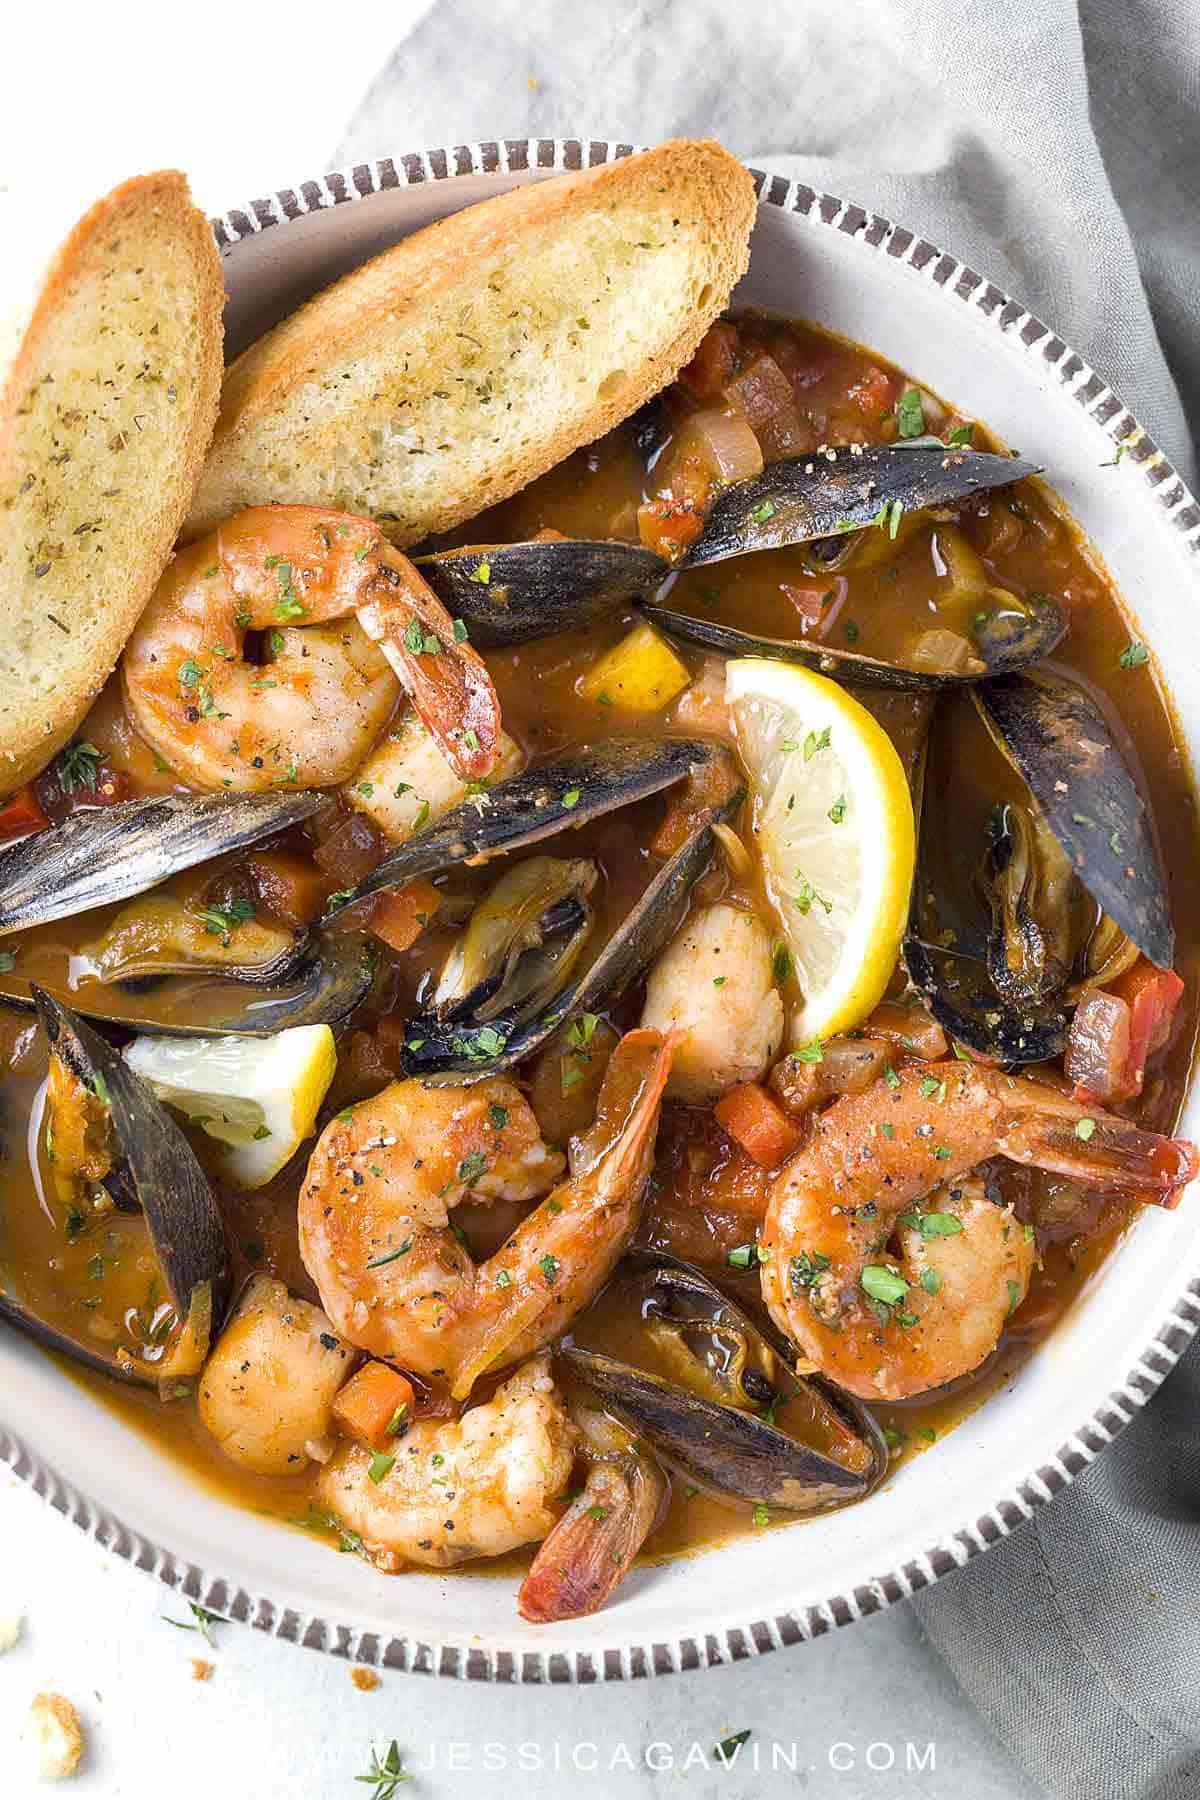 San Francisco Style Seafood Cioppino - A pot of fresh mussels, shrimp, and scallops simmered in a savory tomato and red wine broth. Served with homemade crunchy croutons! #seafoodstew #cioppino #bayareacuisine